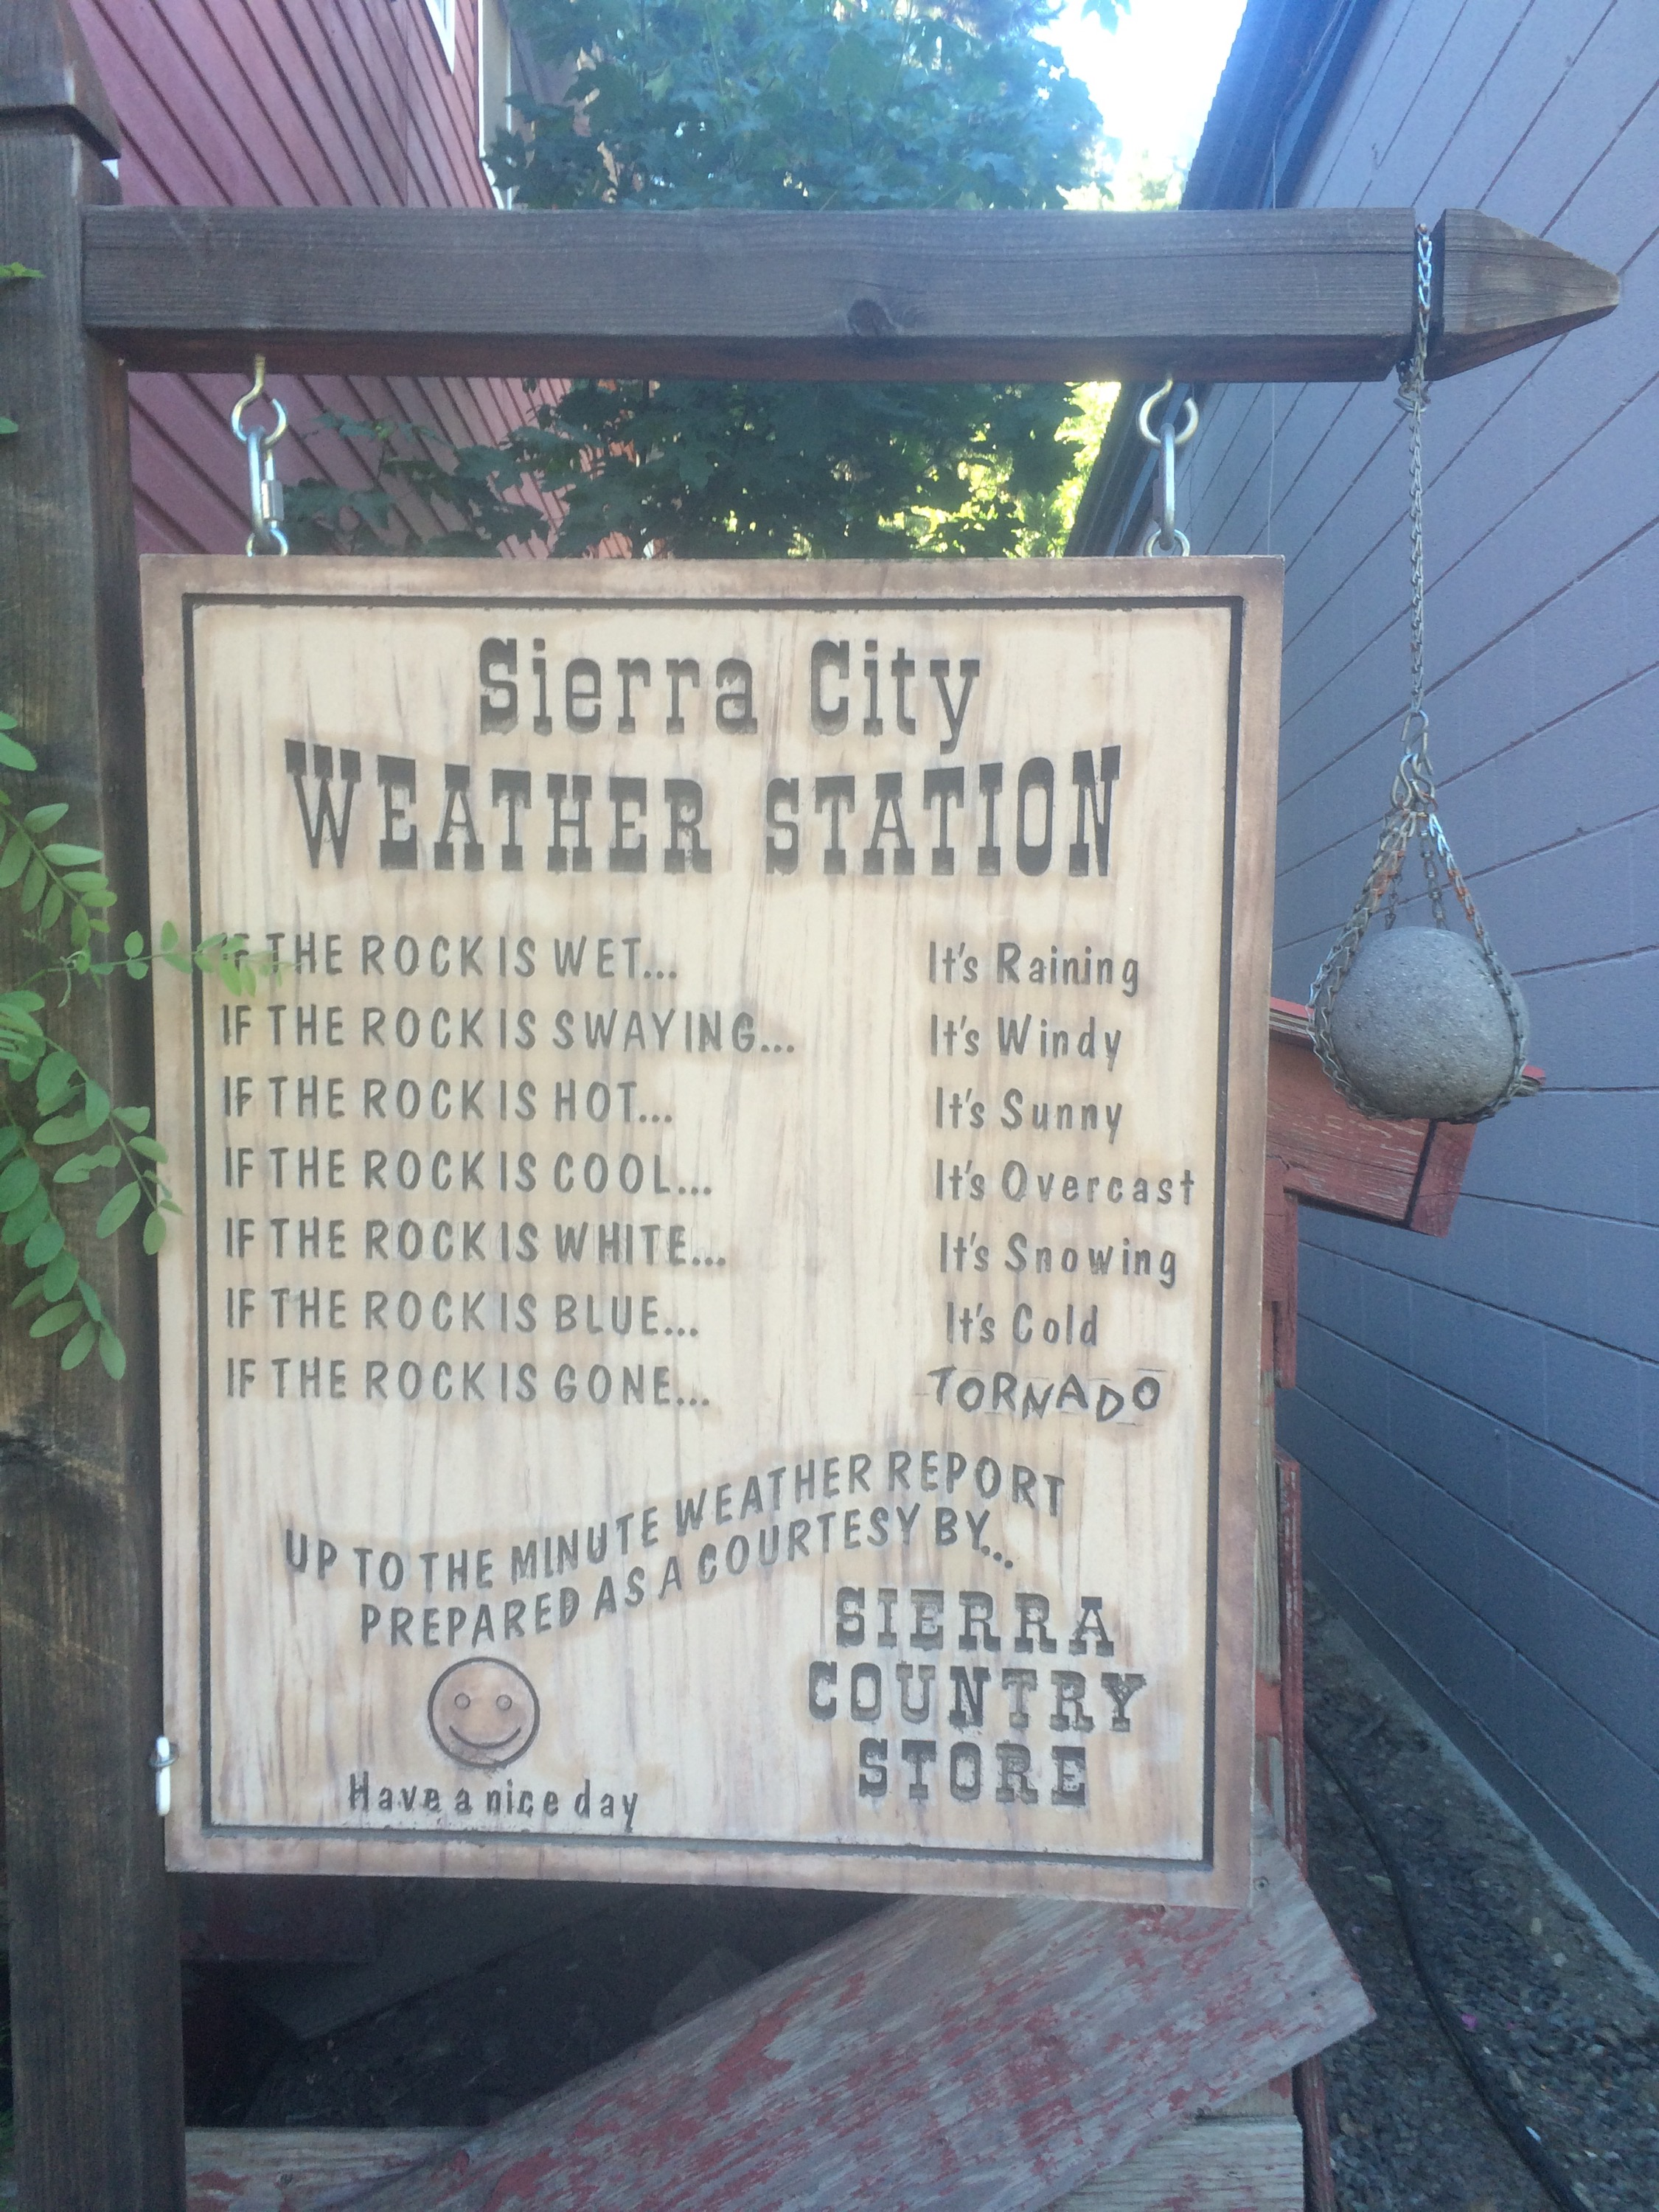 Sierra City Weather Station.